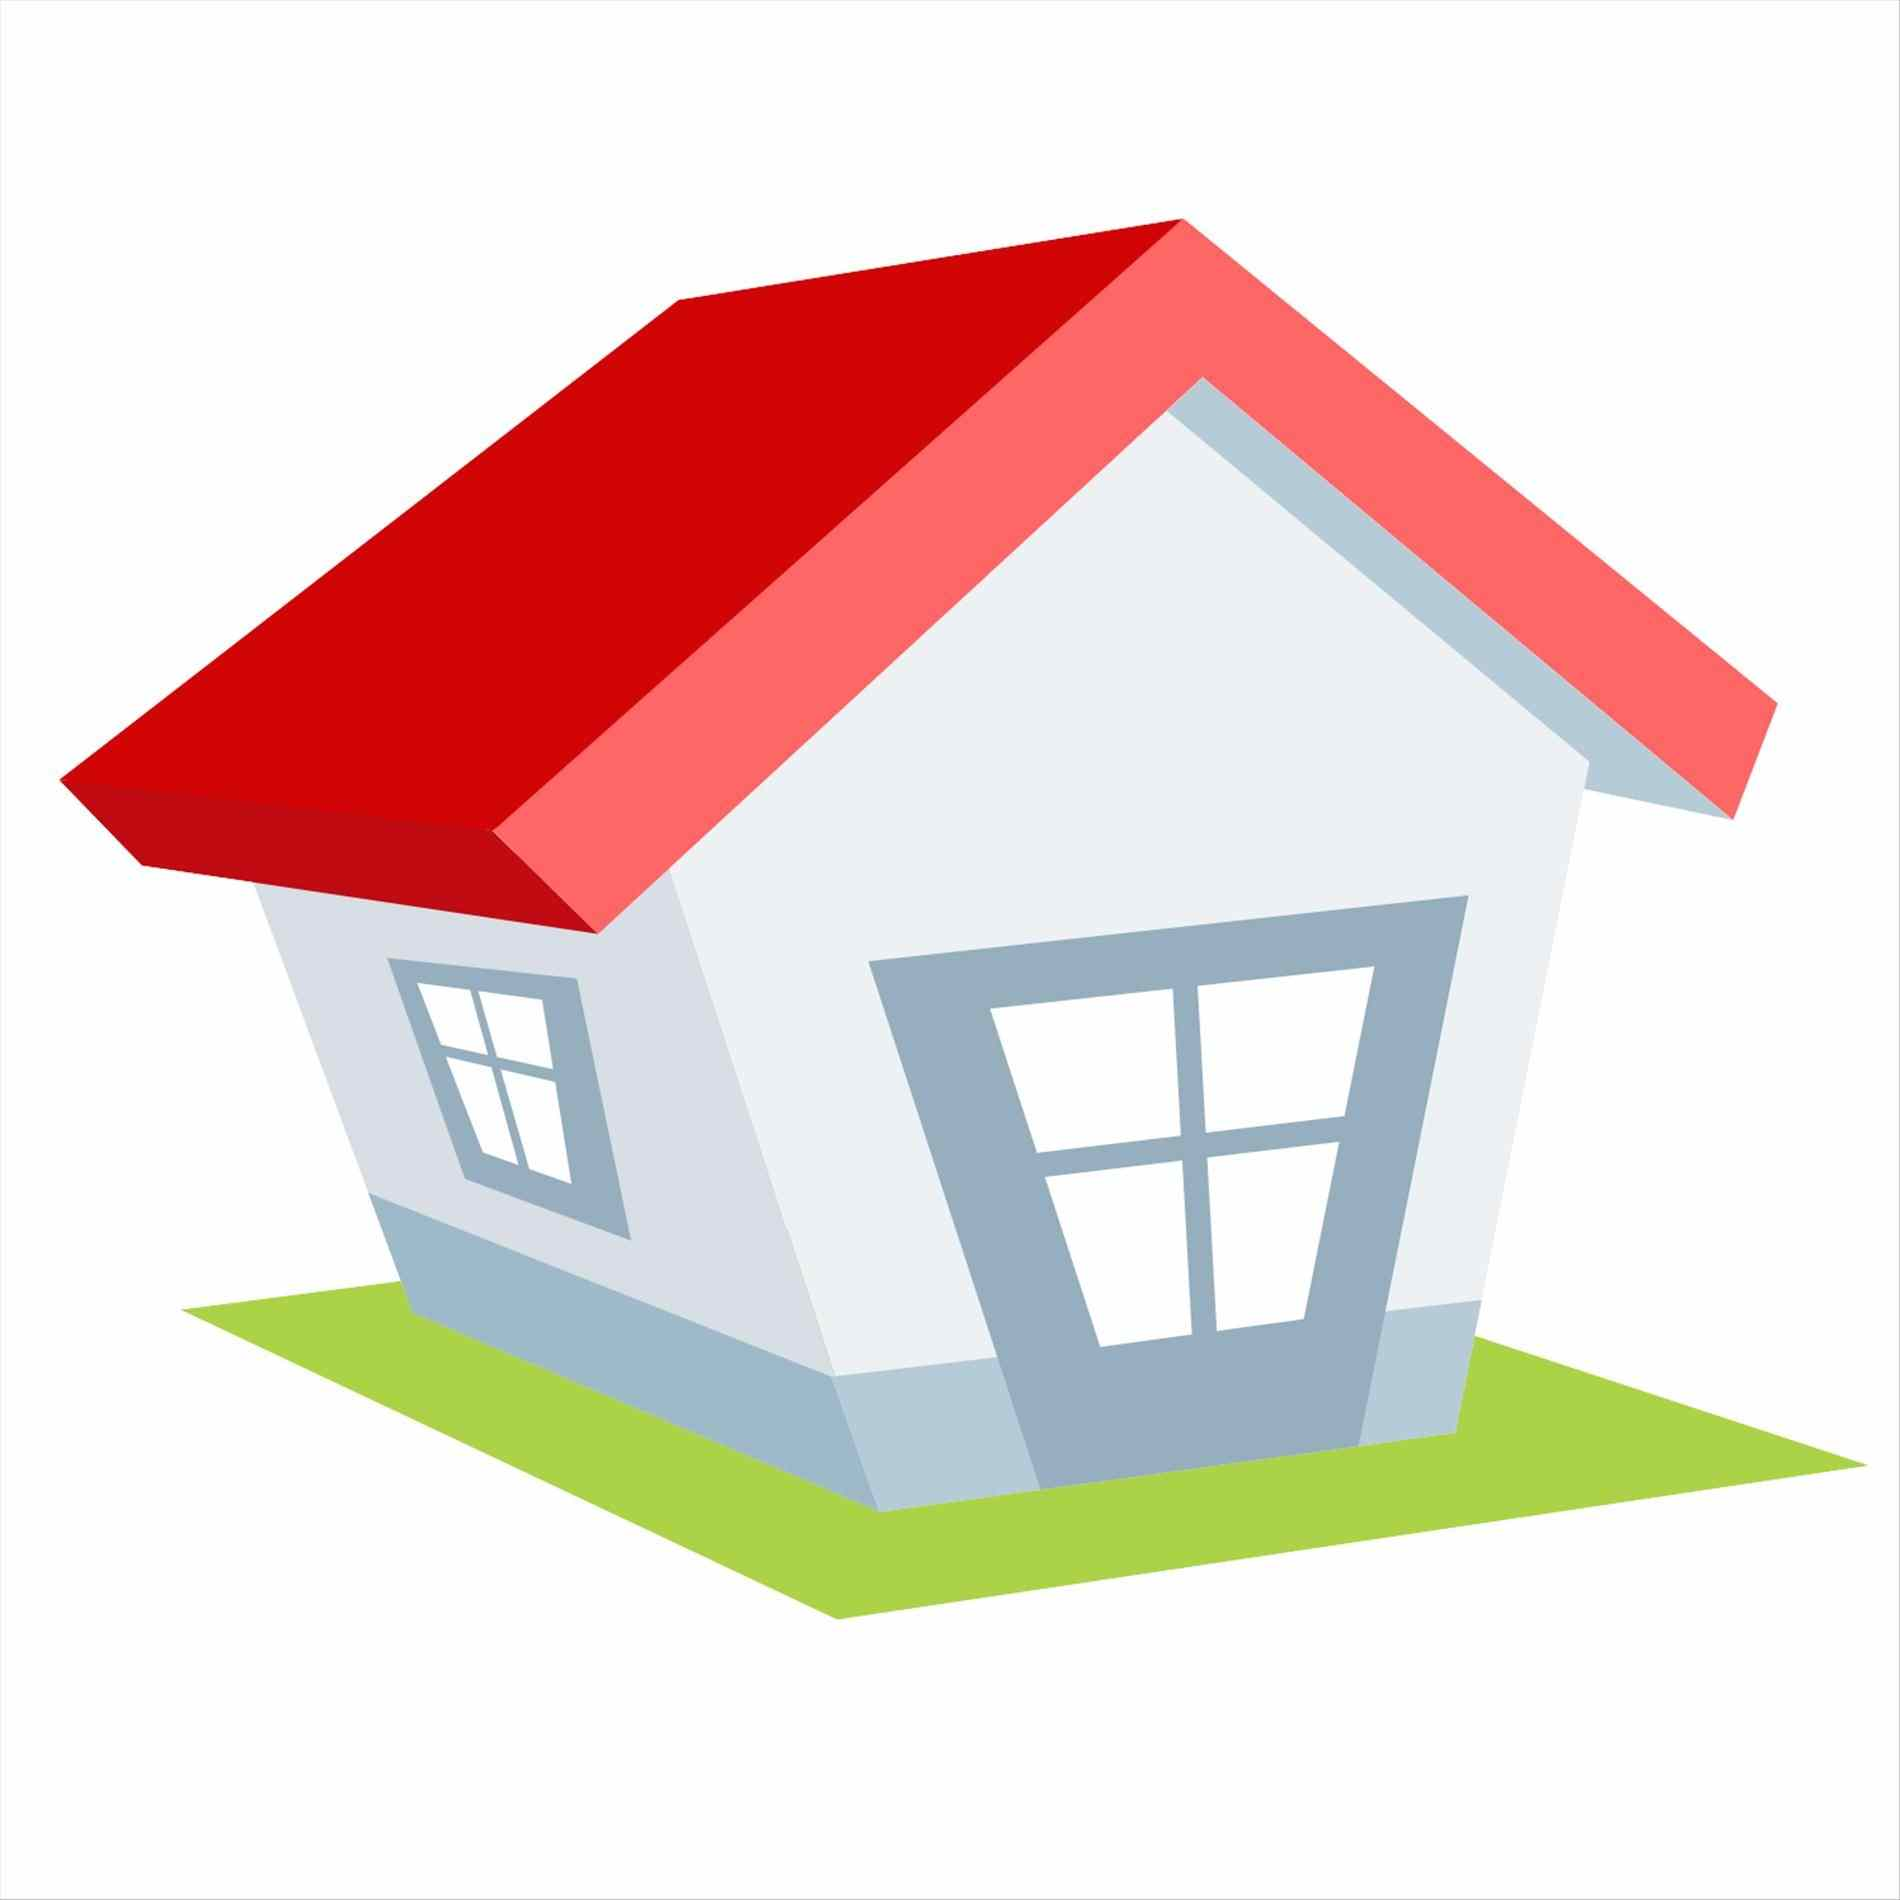 1900x1900 Icon Stock Shutterstock For Free Use With Garage For House Roof